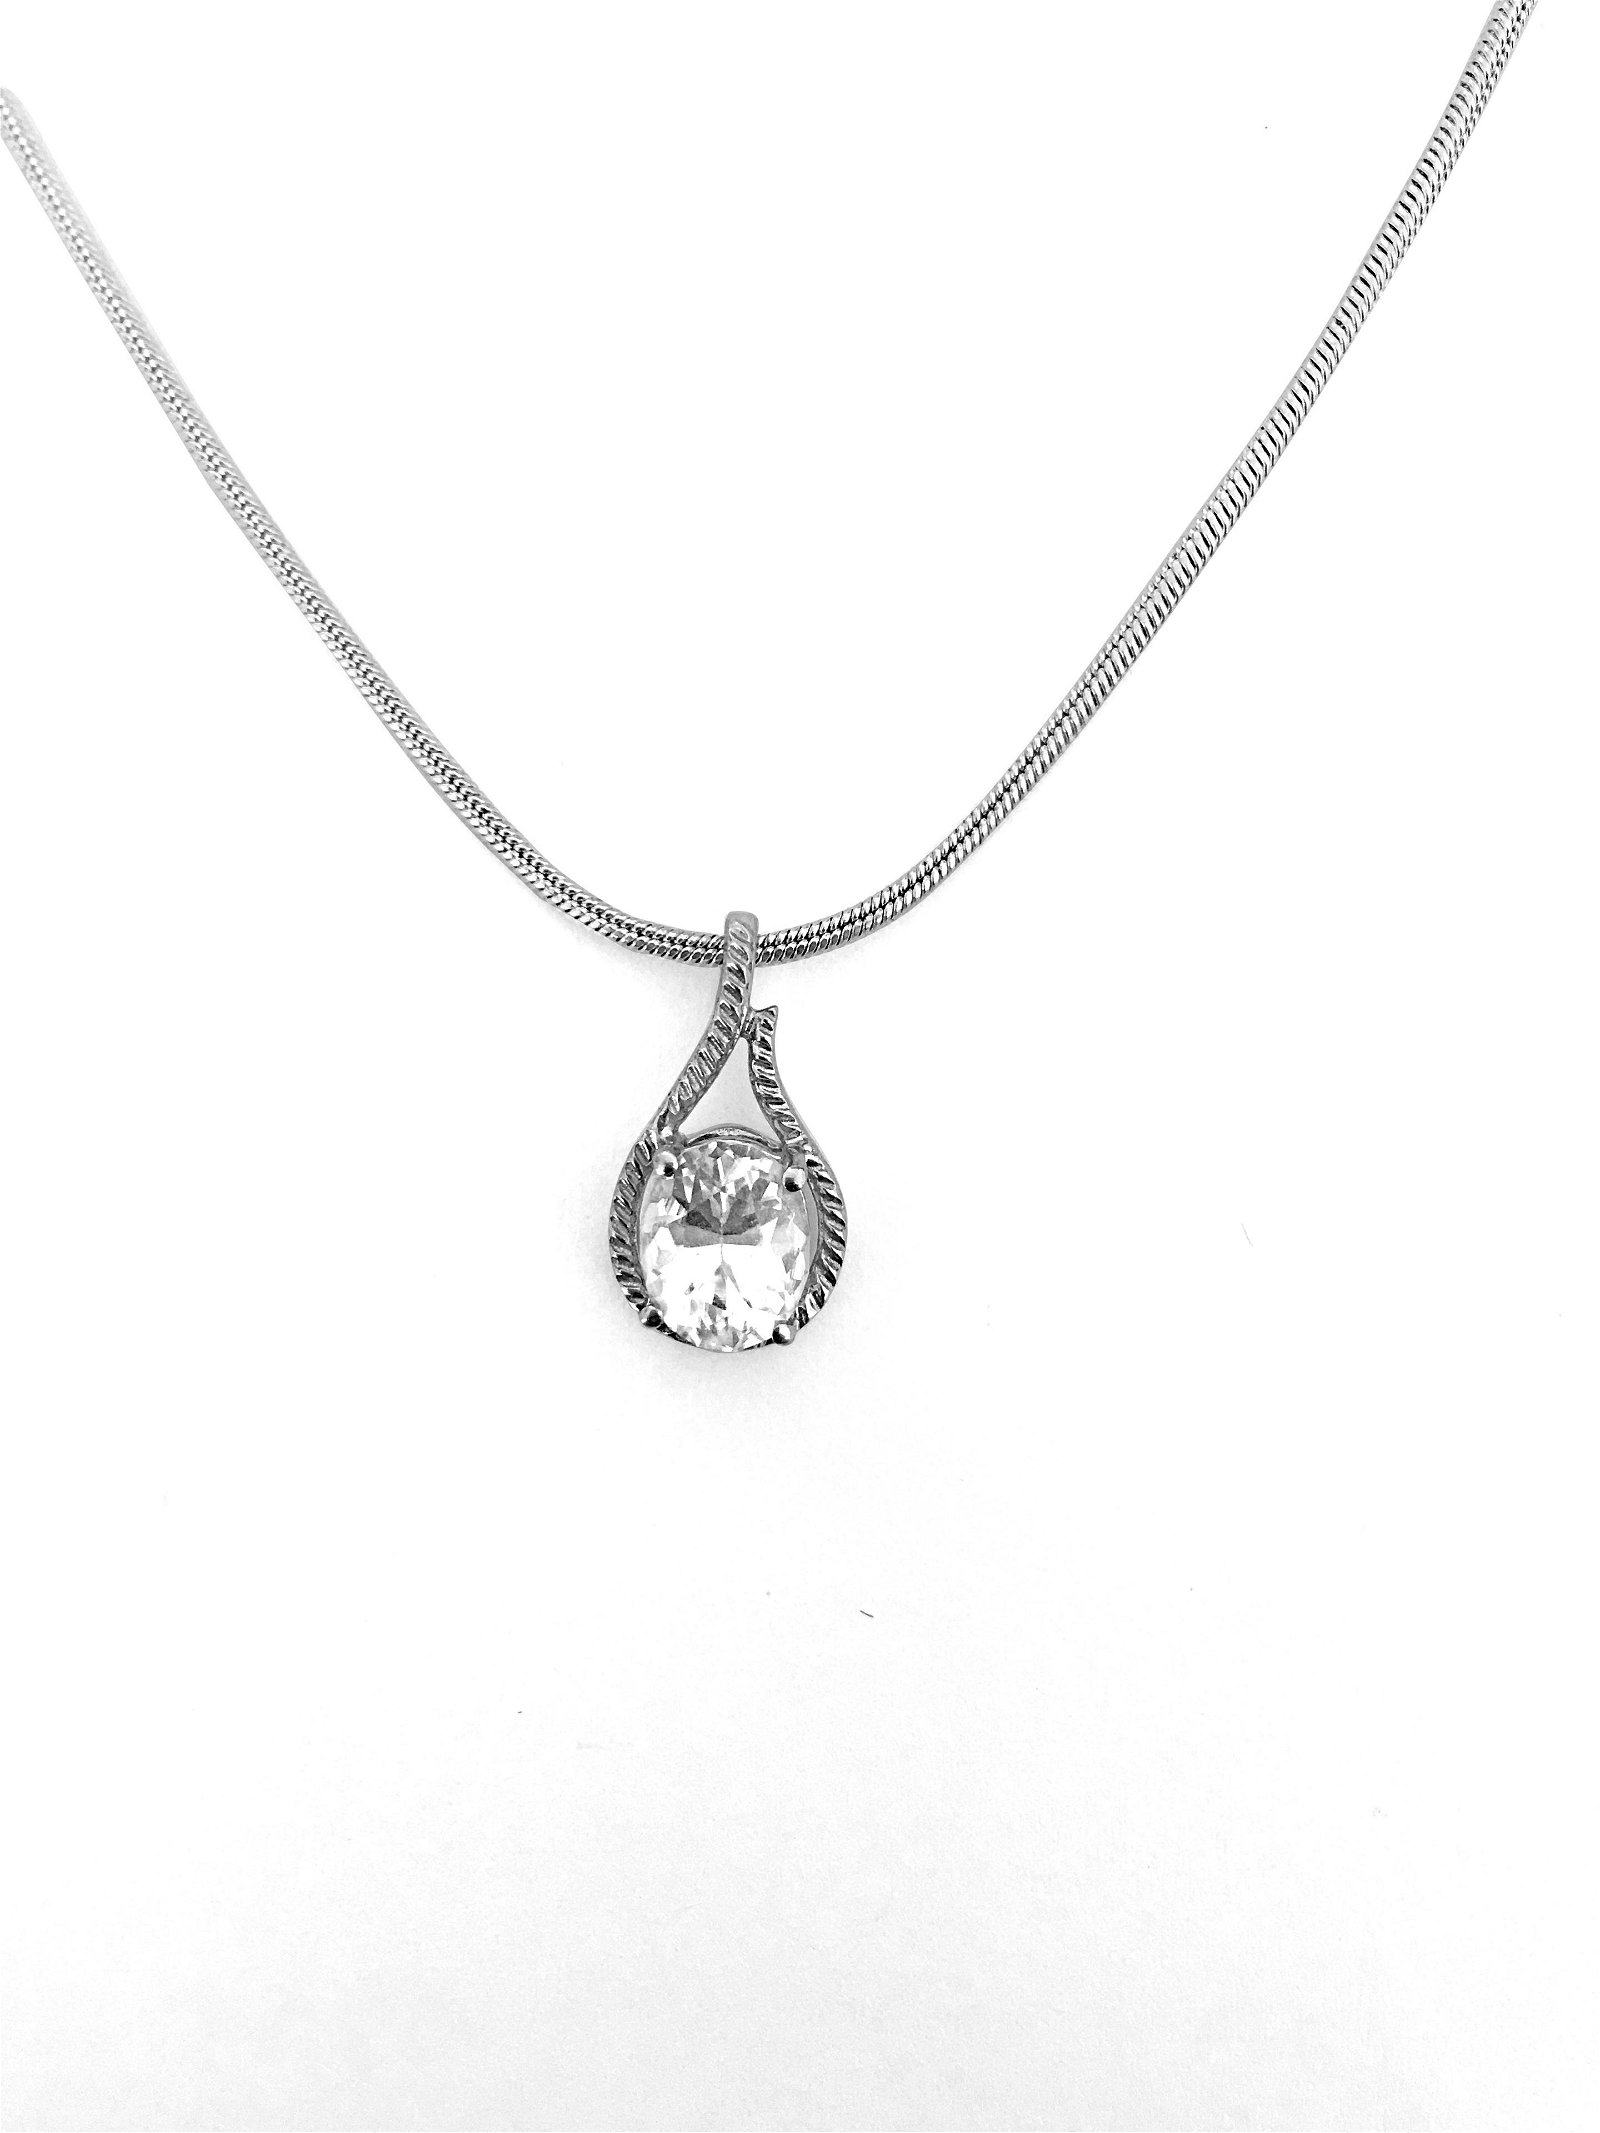 Made In Italy, Sterling Silver Pendant & Necklace